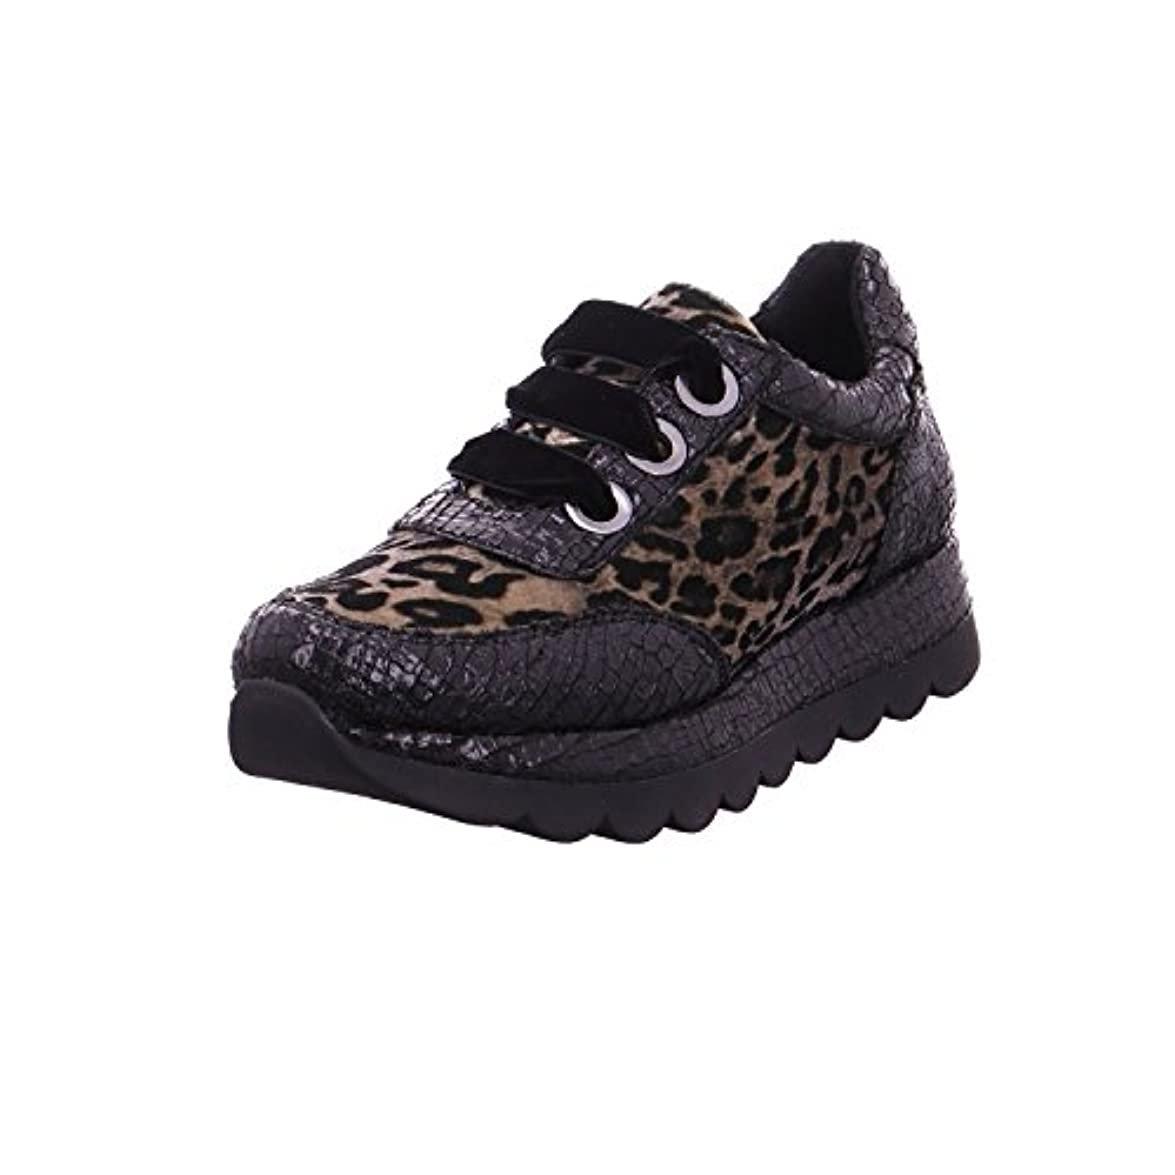 Cafe' Noir Sneakers Donna Maculato Db944 A i 2018 19 Cod jdb944